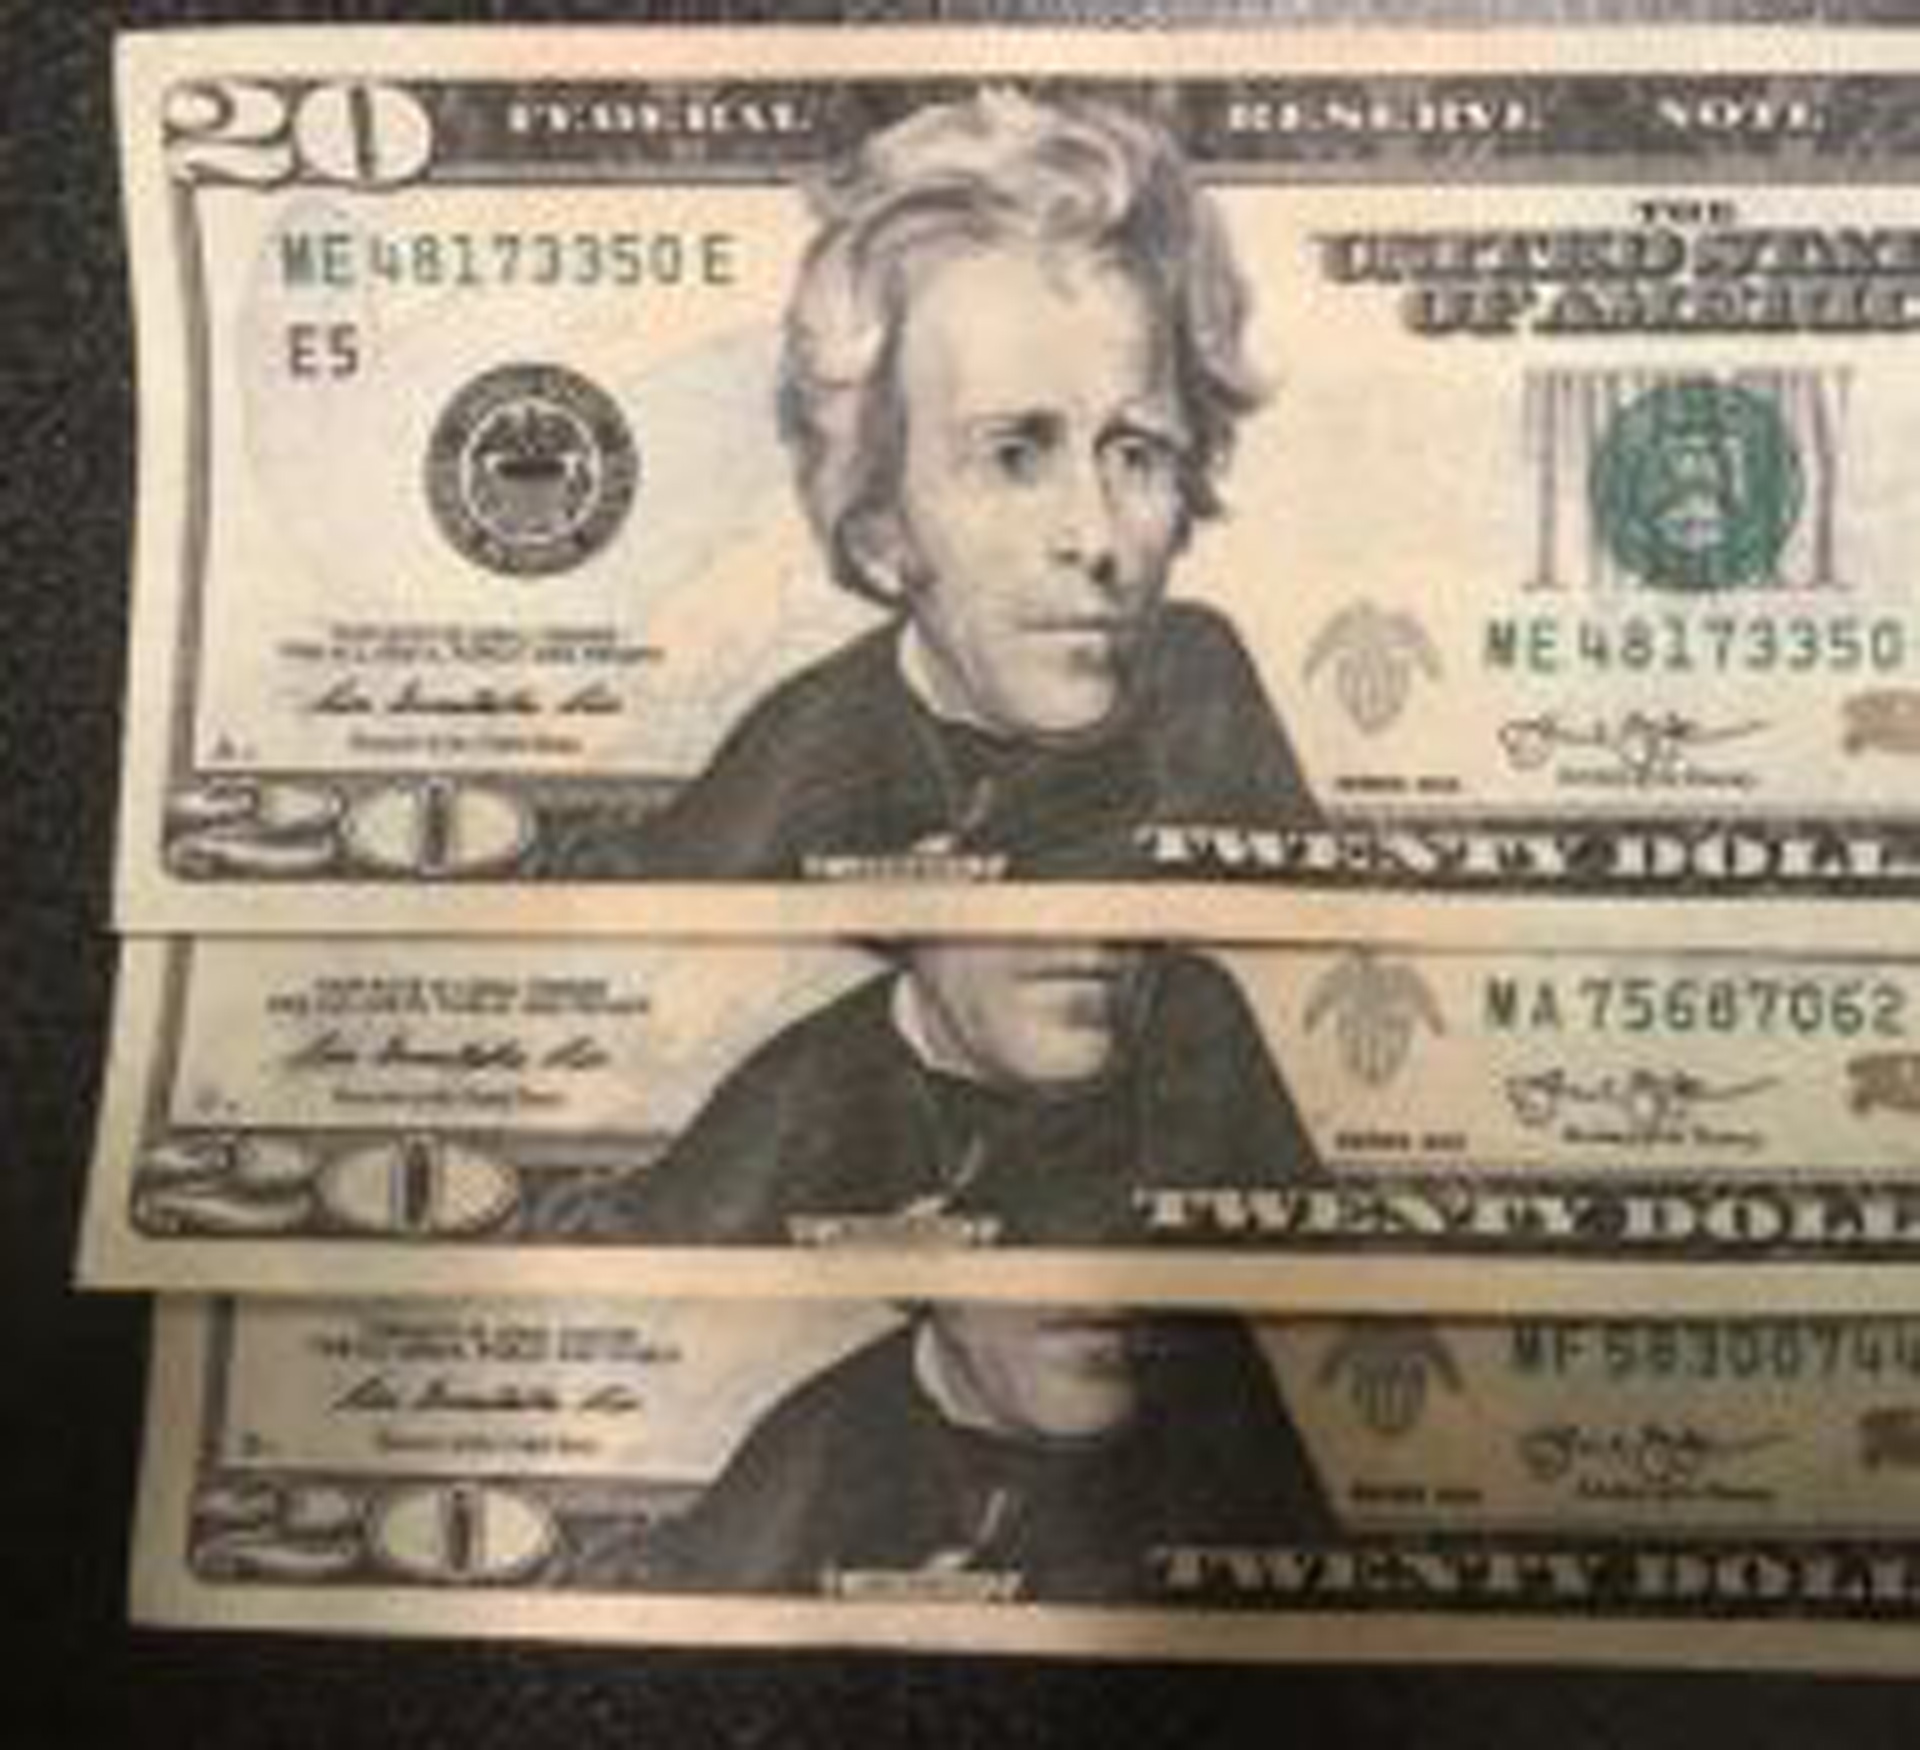 check the serial number on money